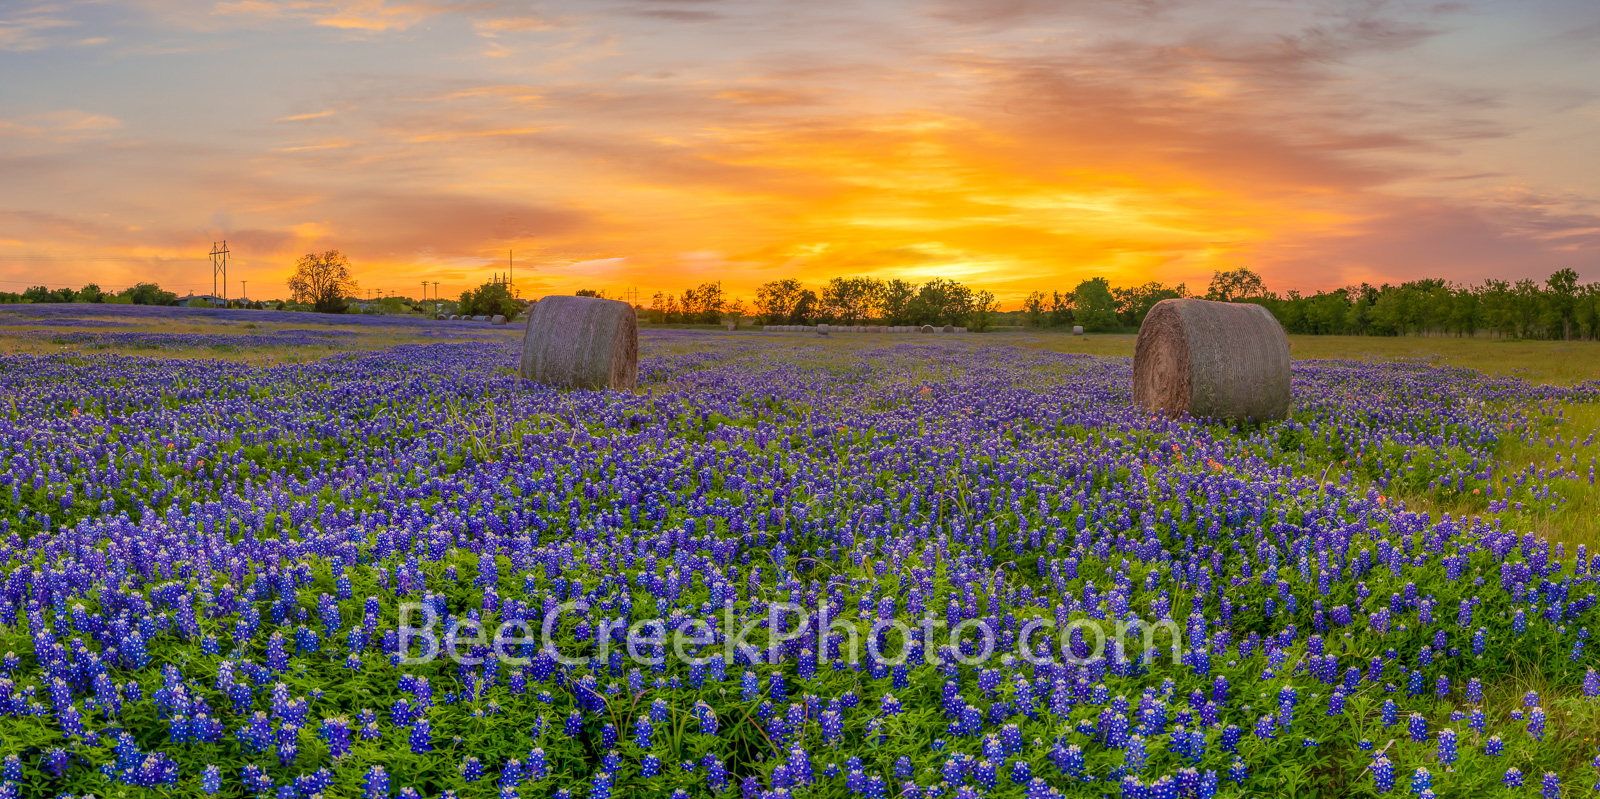 Texas Bluebonnets, bluebonnets, tx bluebonnets, sunset, hay bales, sunrays, texas wildflowers, indian paintbrush, Sunset Over images of texas, field of bluebonnets, texas farm,, photo